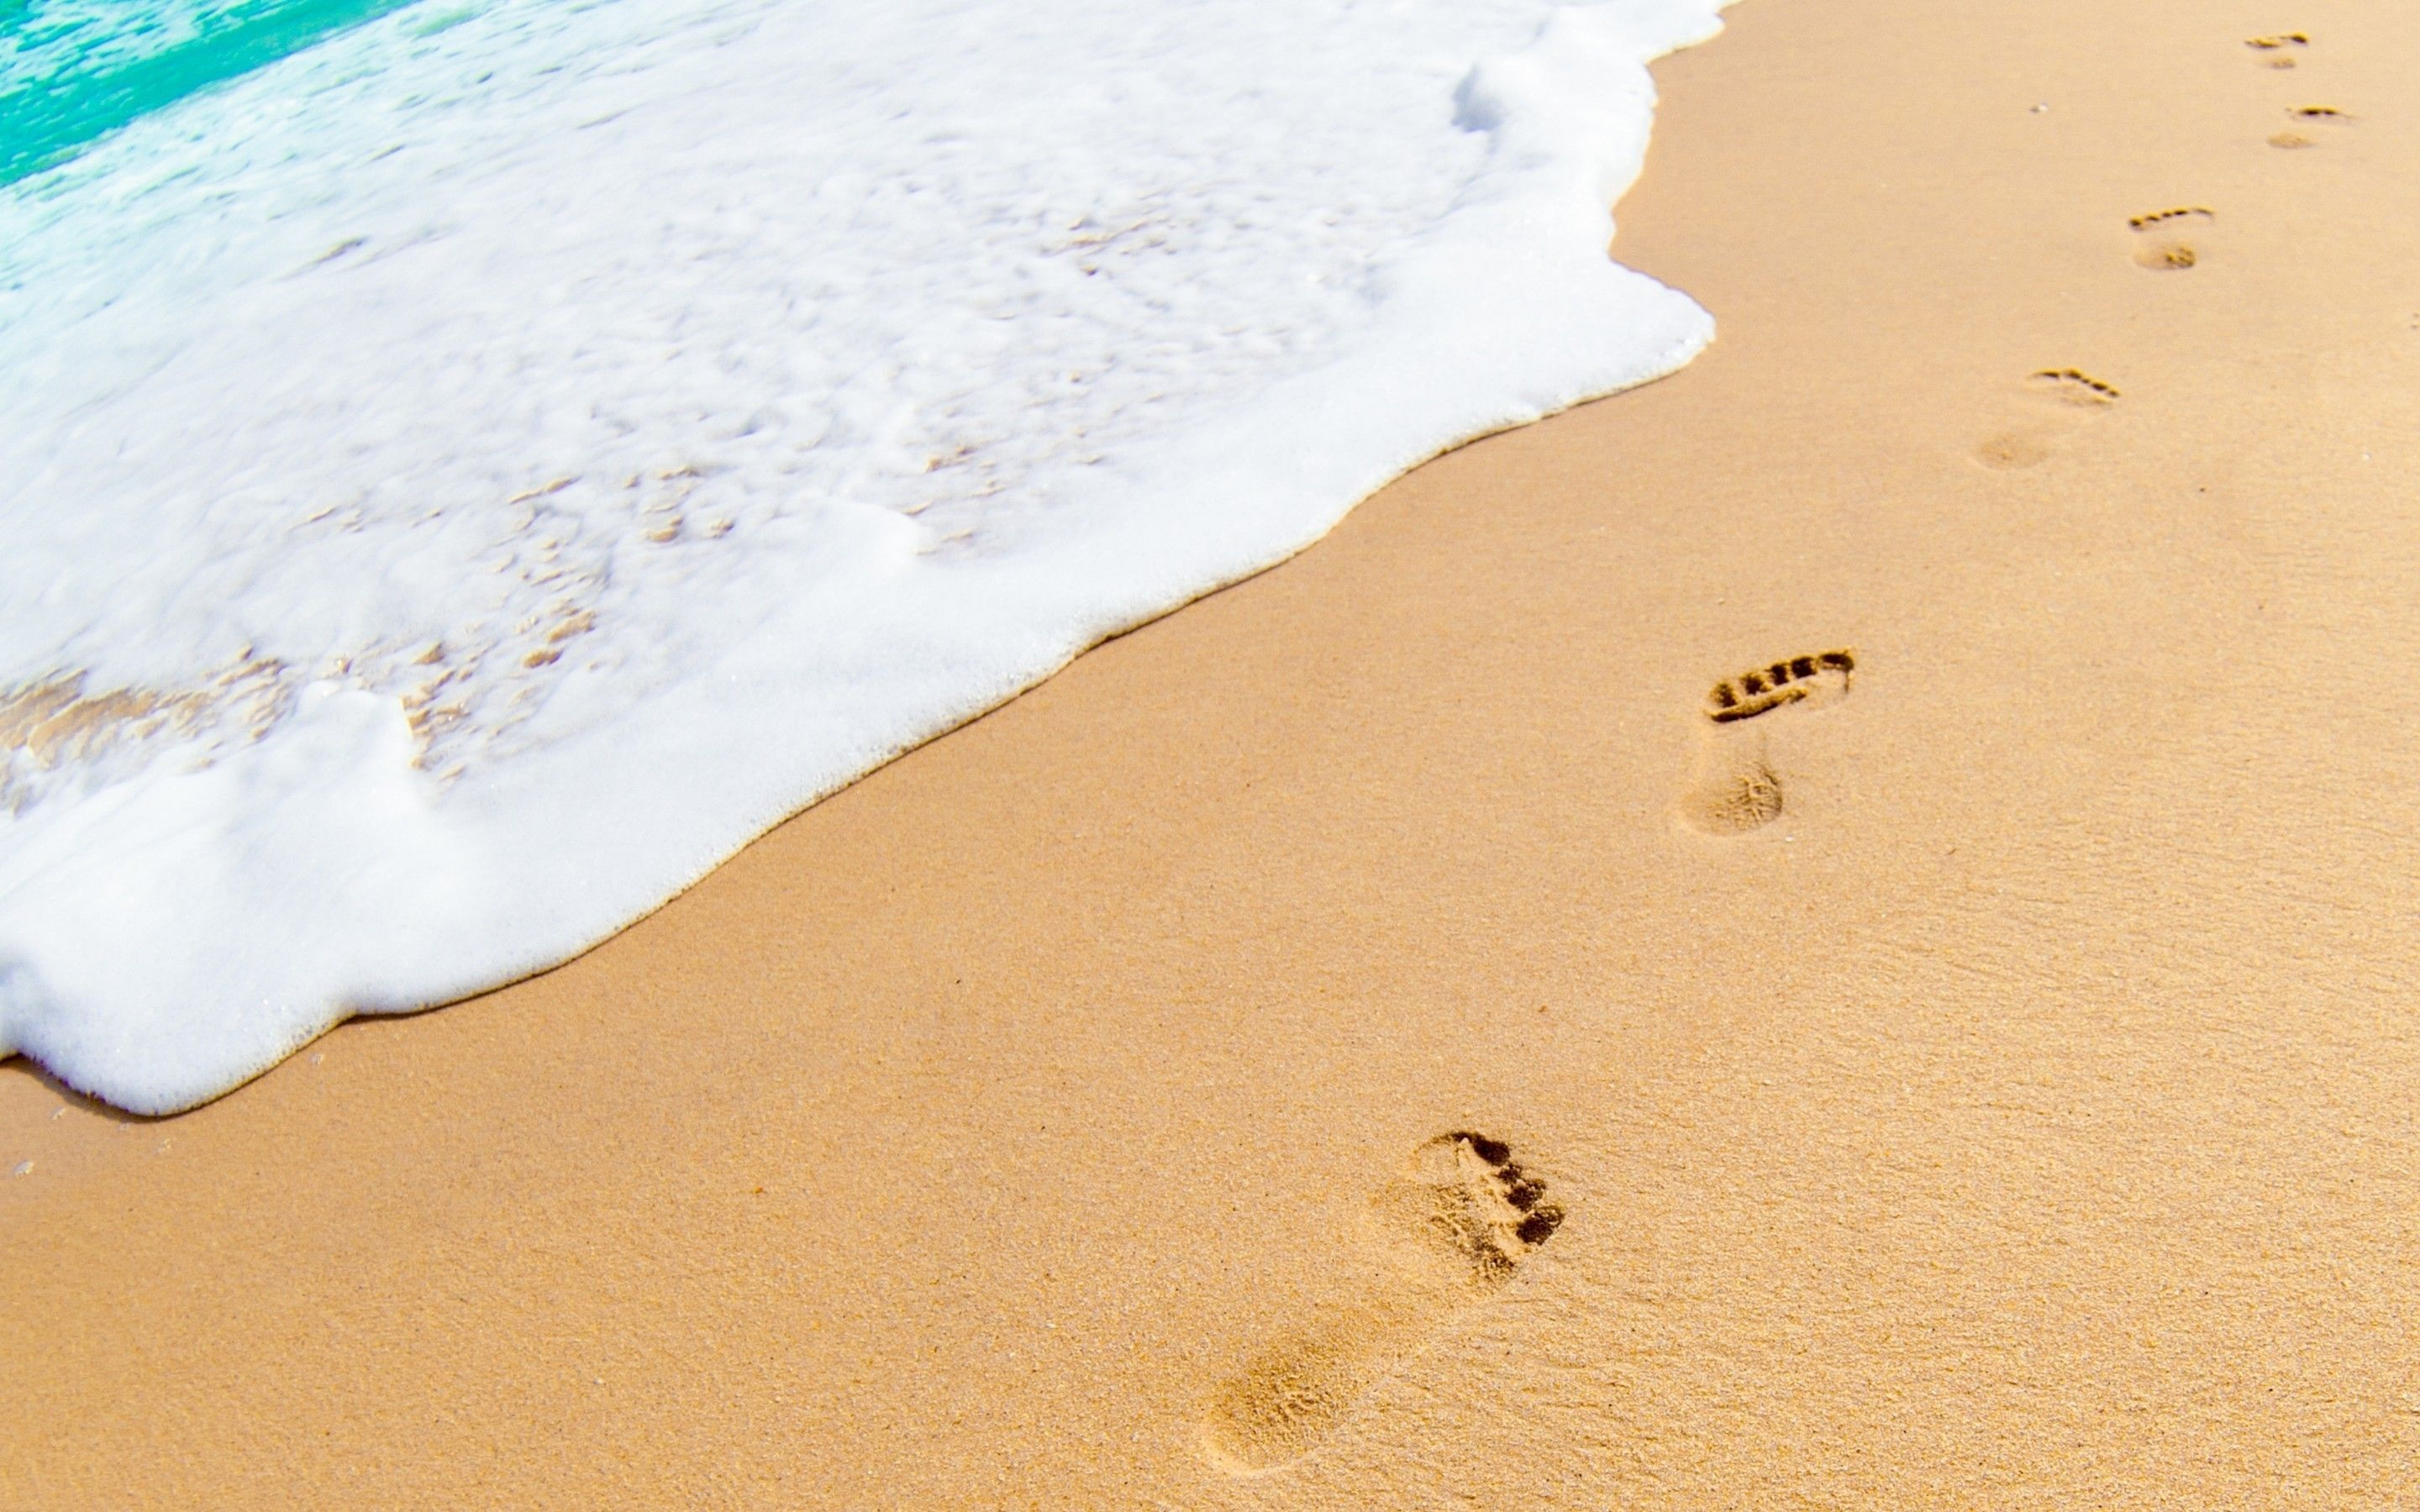 footprints in the sand Wallpaper | HD Desktop Wallpapers | Pinterest ...